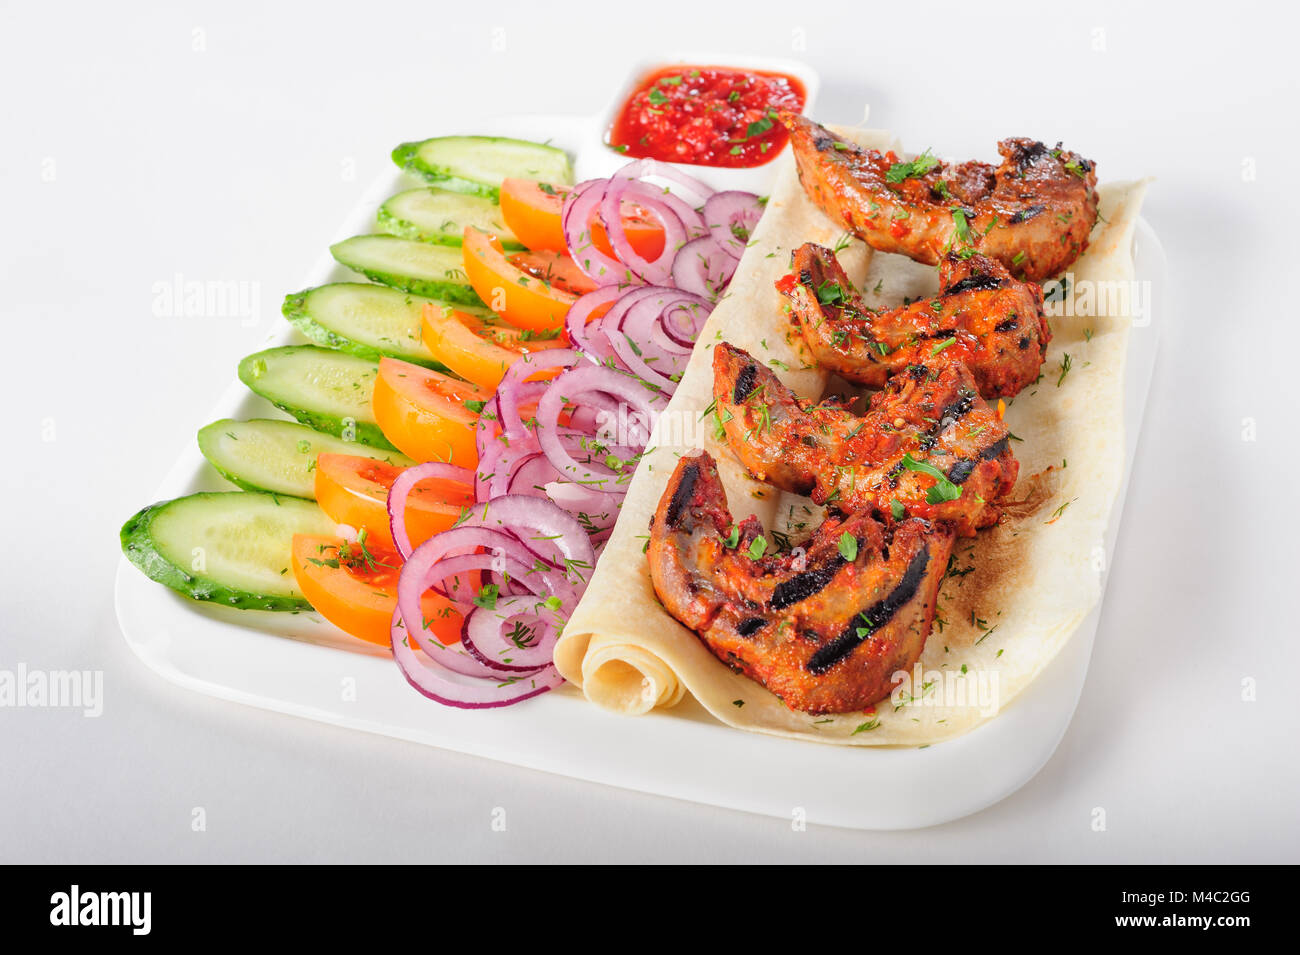 Grilled lamb tongues with fresh vegetables salad - Stock Image